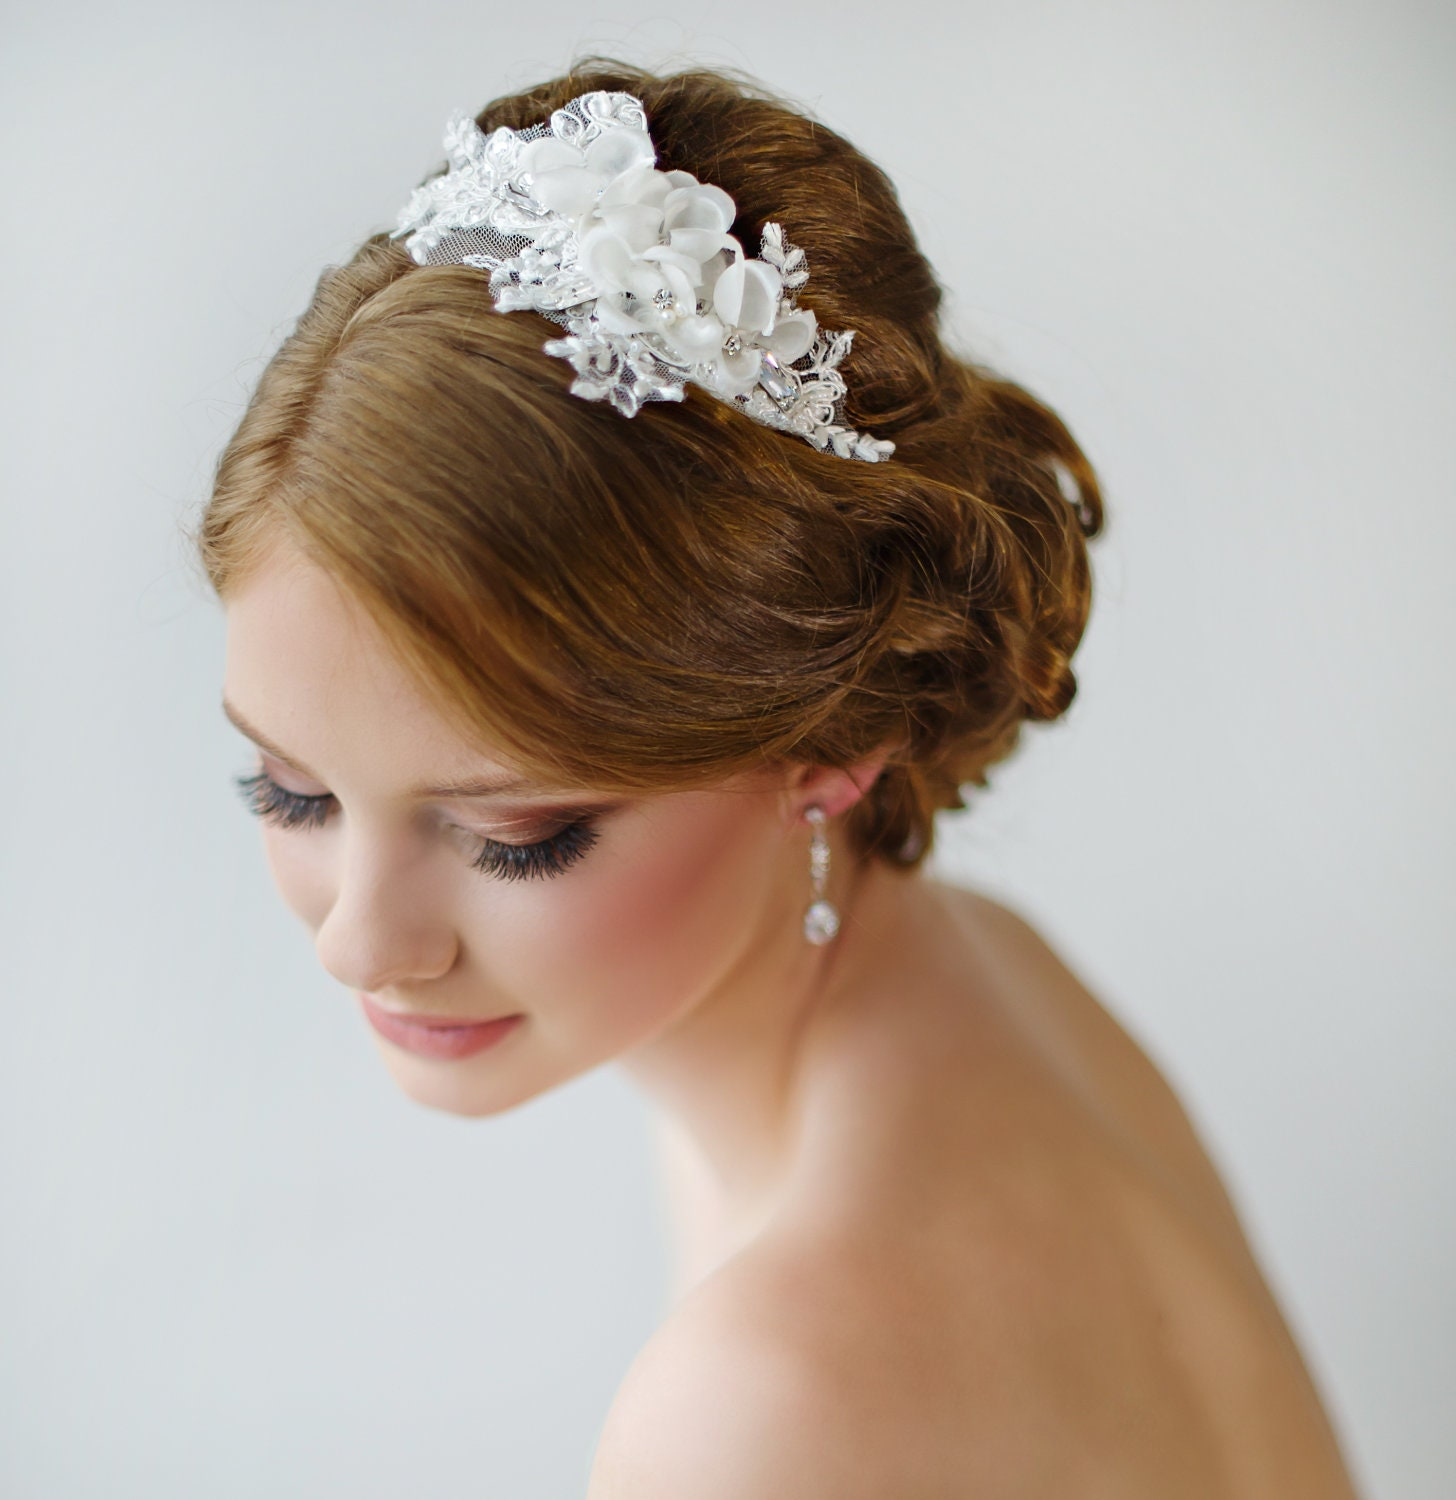 Floral Lace Headpiece For Wedding: Bridal Headband Floral Headband Ivory Lace By PowderBlueBijoux